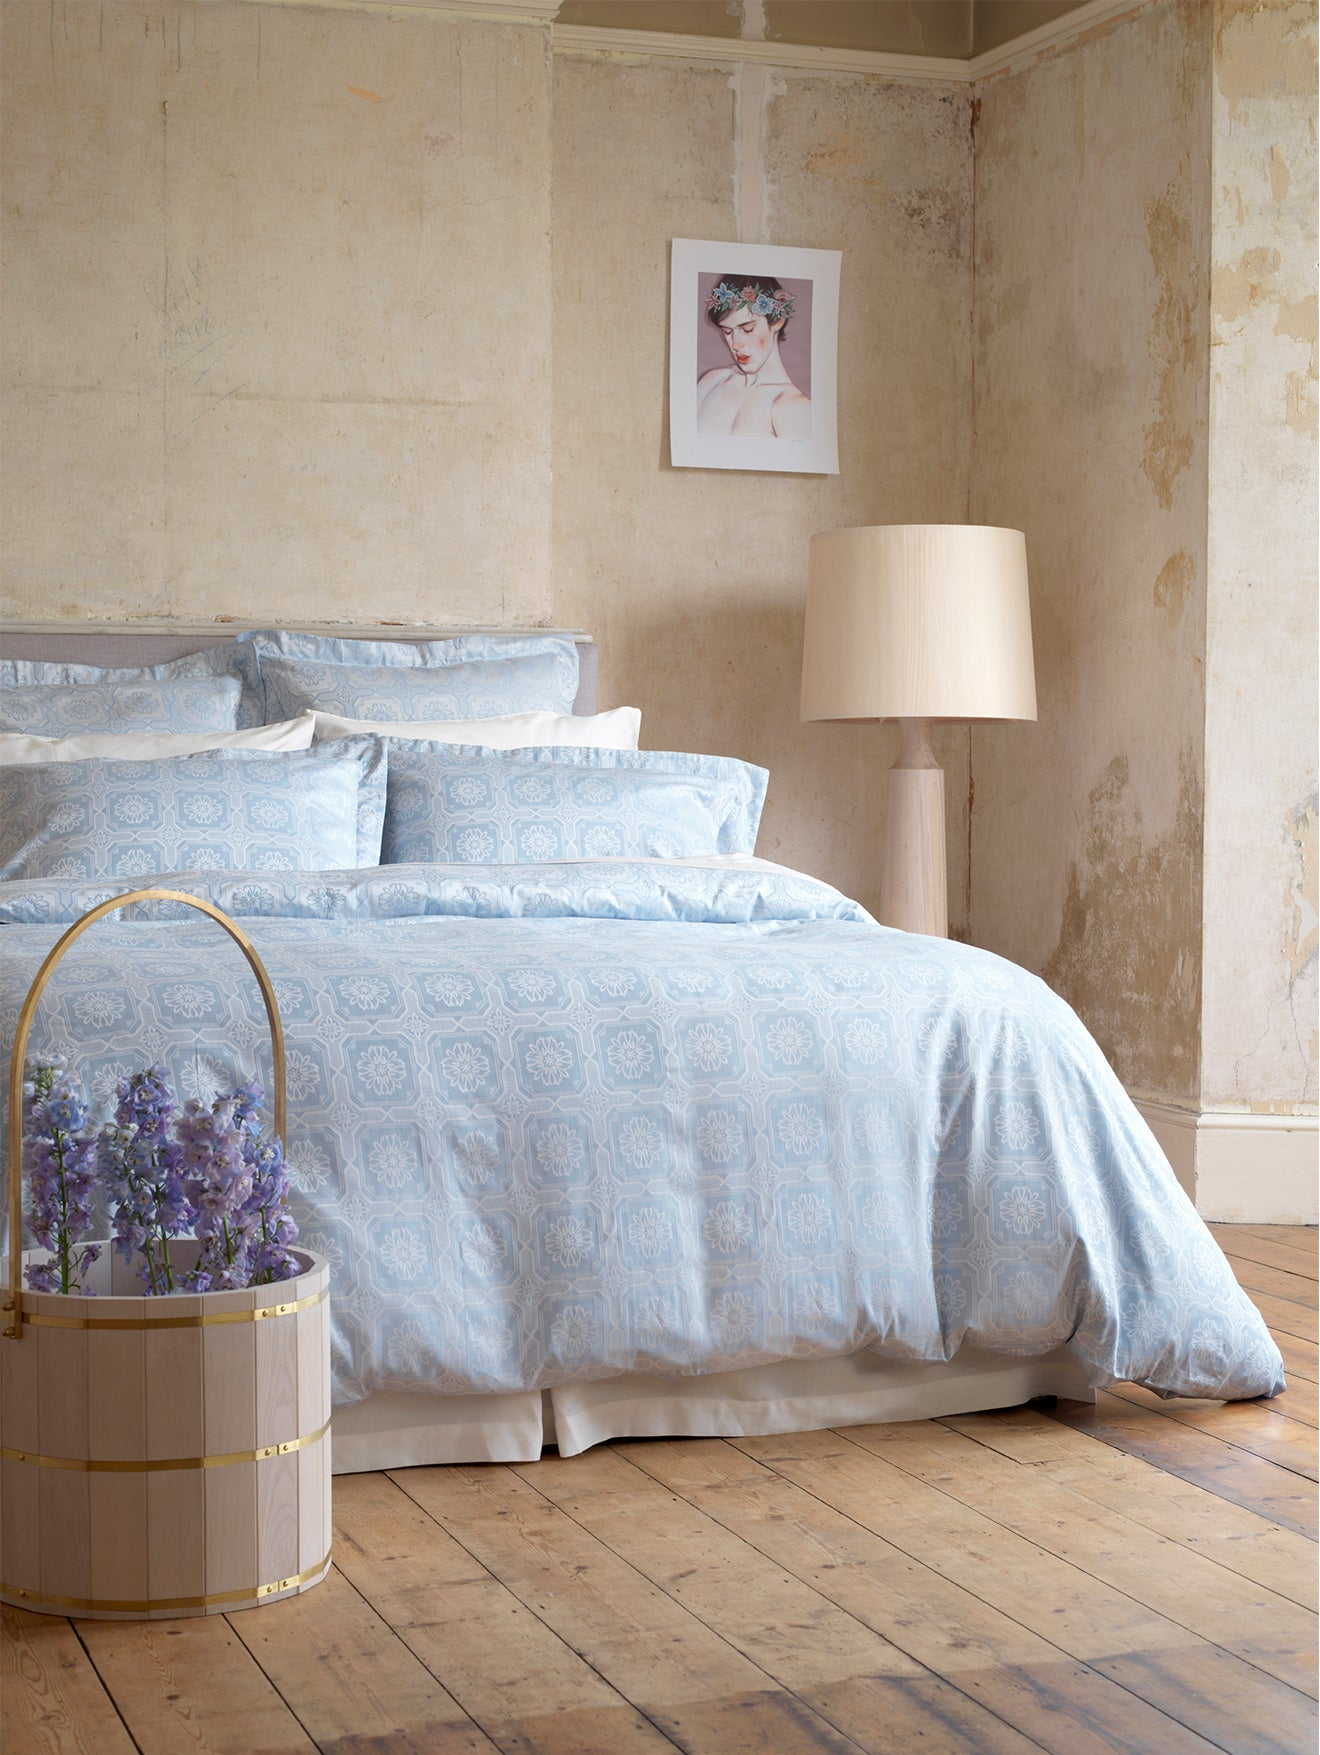 baby blue luxury bedding collaboration with 2LG and Secret Linen